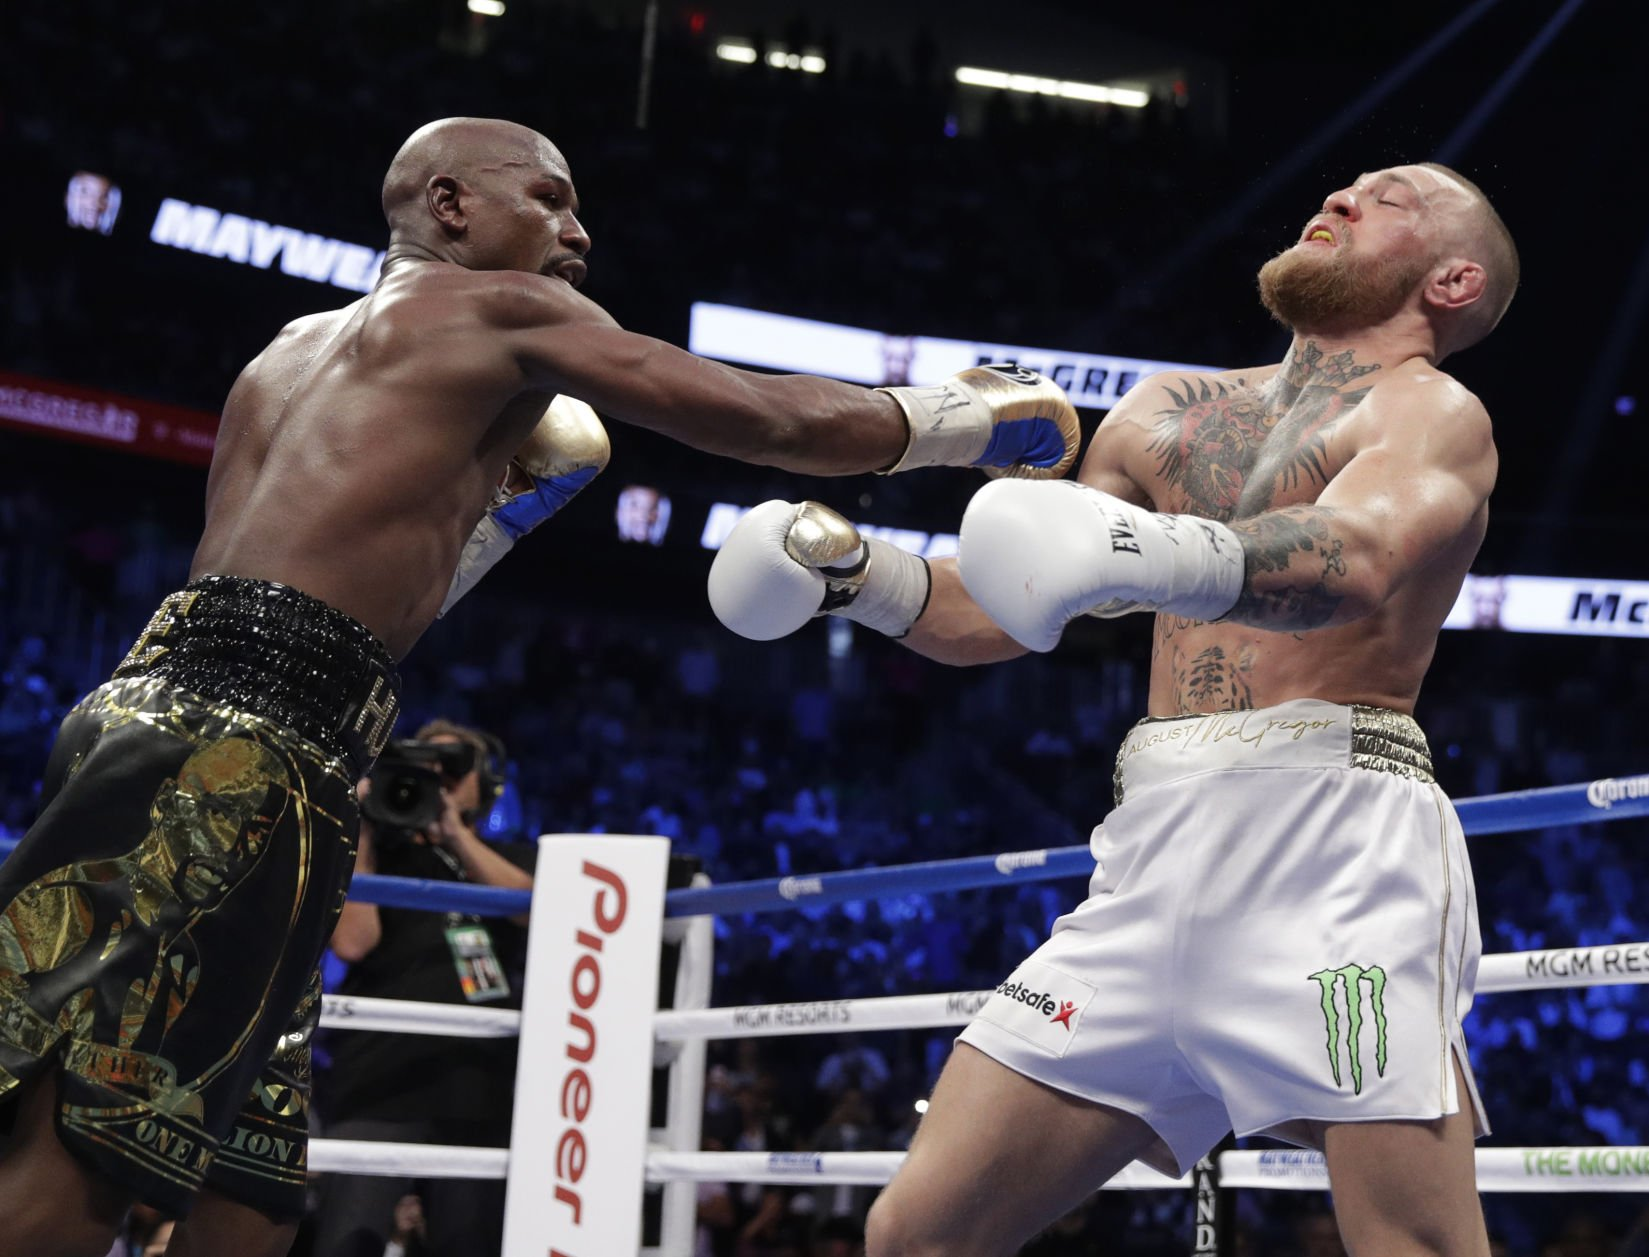 Floyd Mayweather fulfilled promise very few expected against Conor McGregor